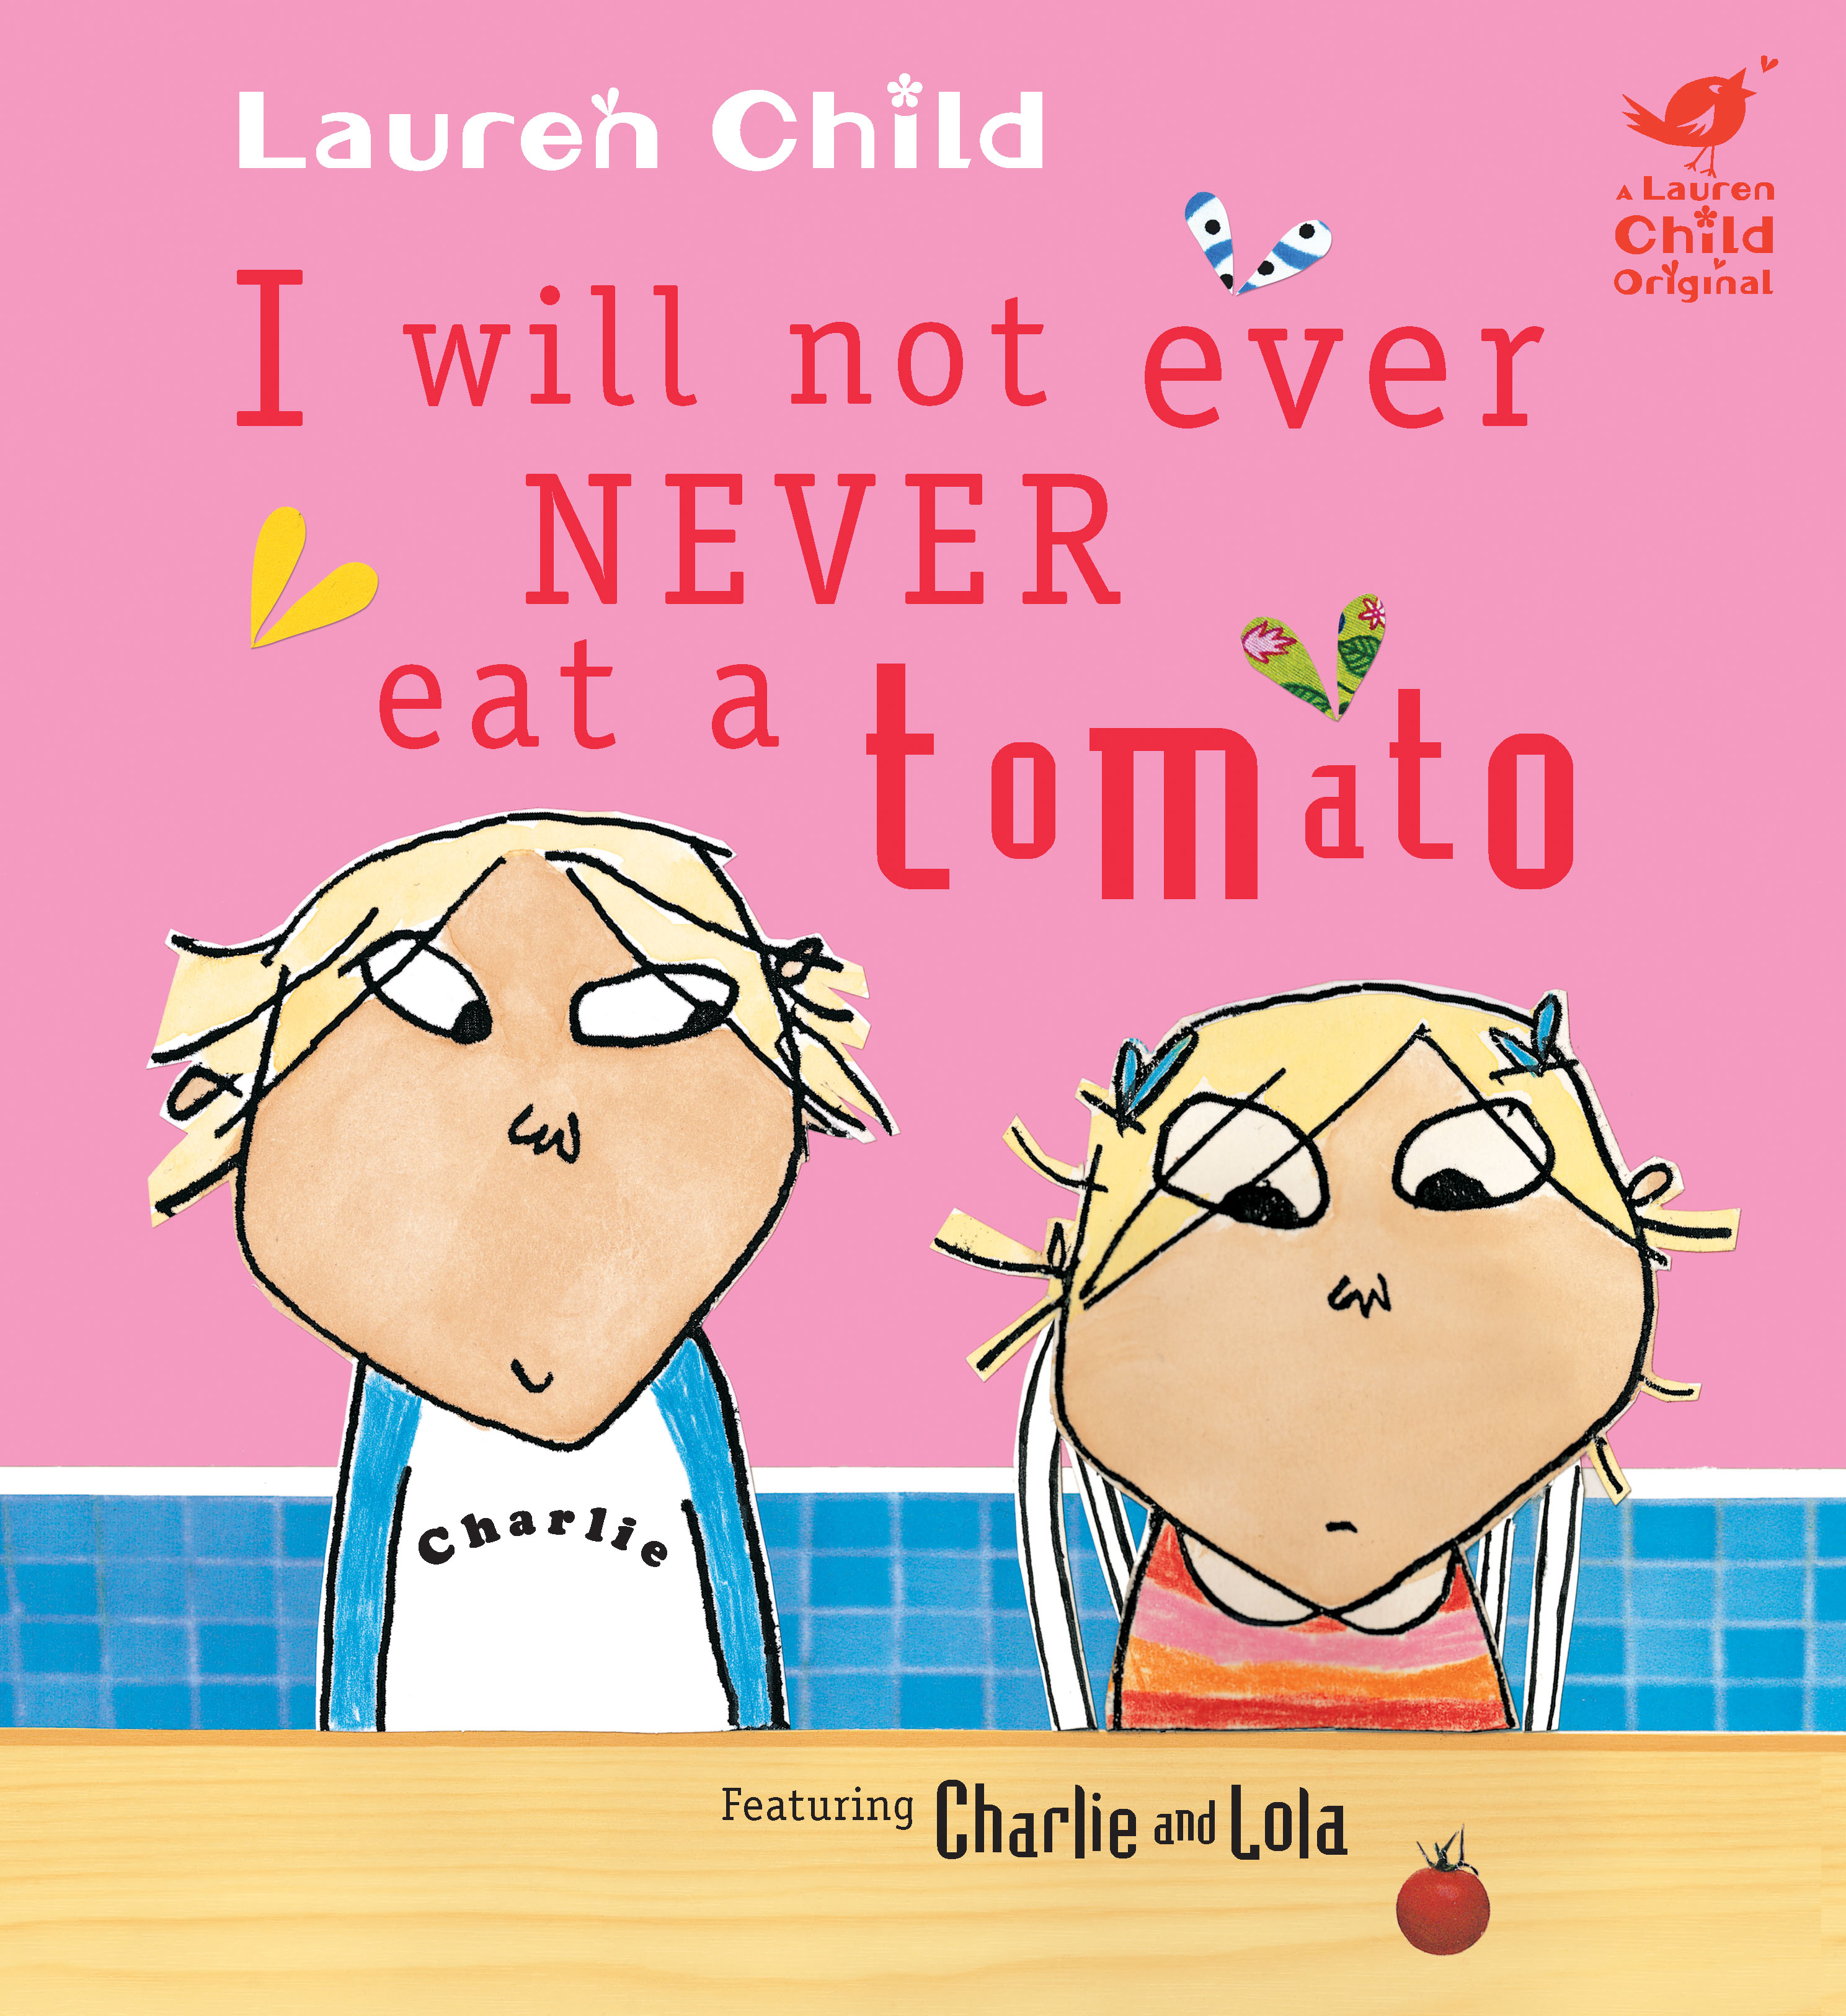 libro di Lauren Child creatrice di Charlie and Lola